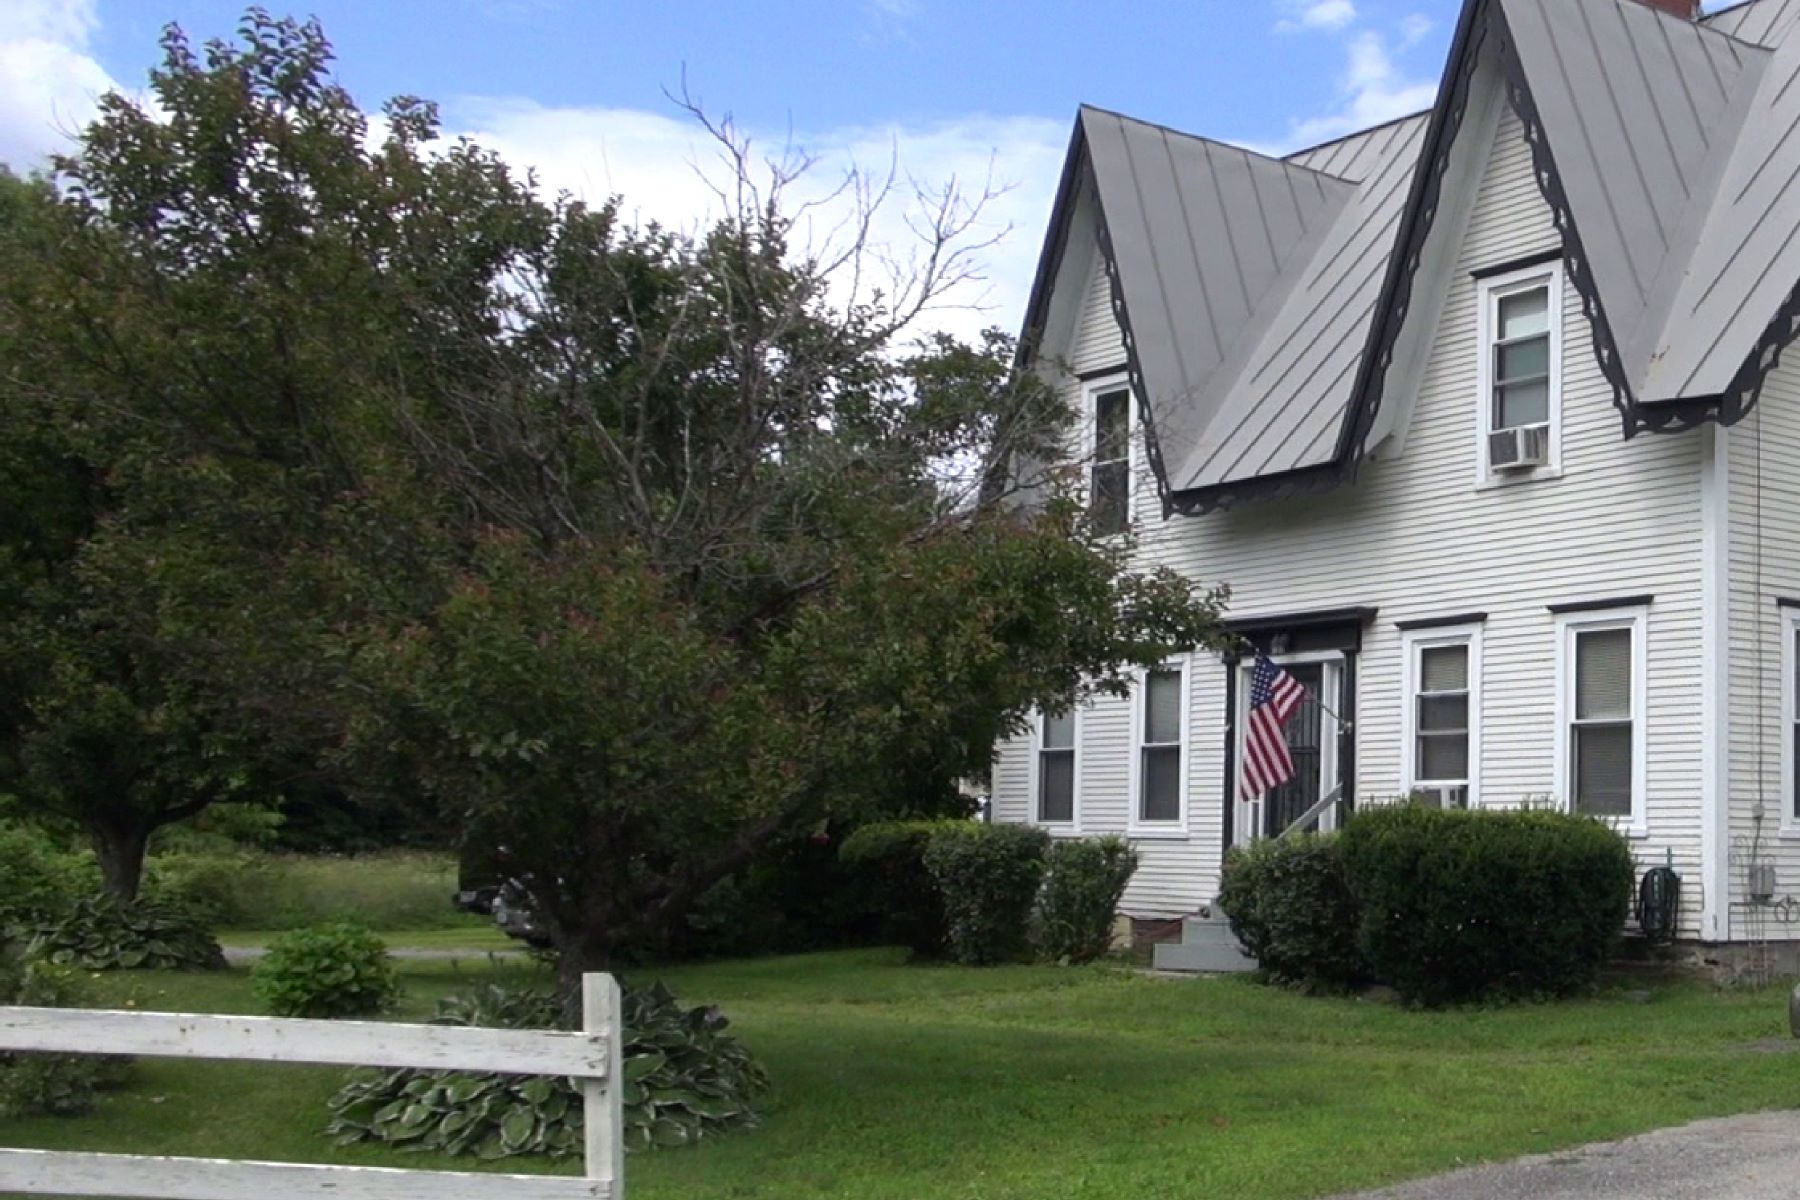 Multi-Family Home for Sale at Direct access to the White River 5321 Vt Route 107, Stockbridge, Vermont, 05772 United States